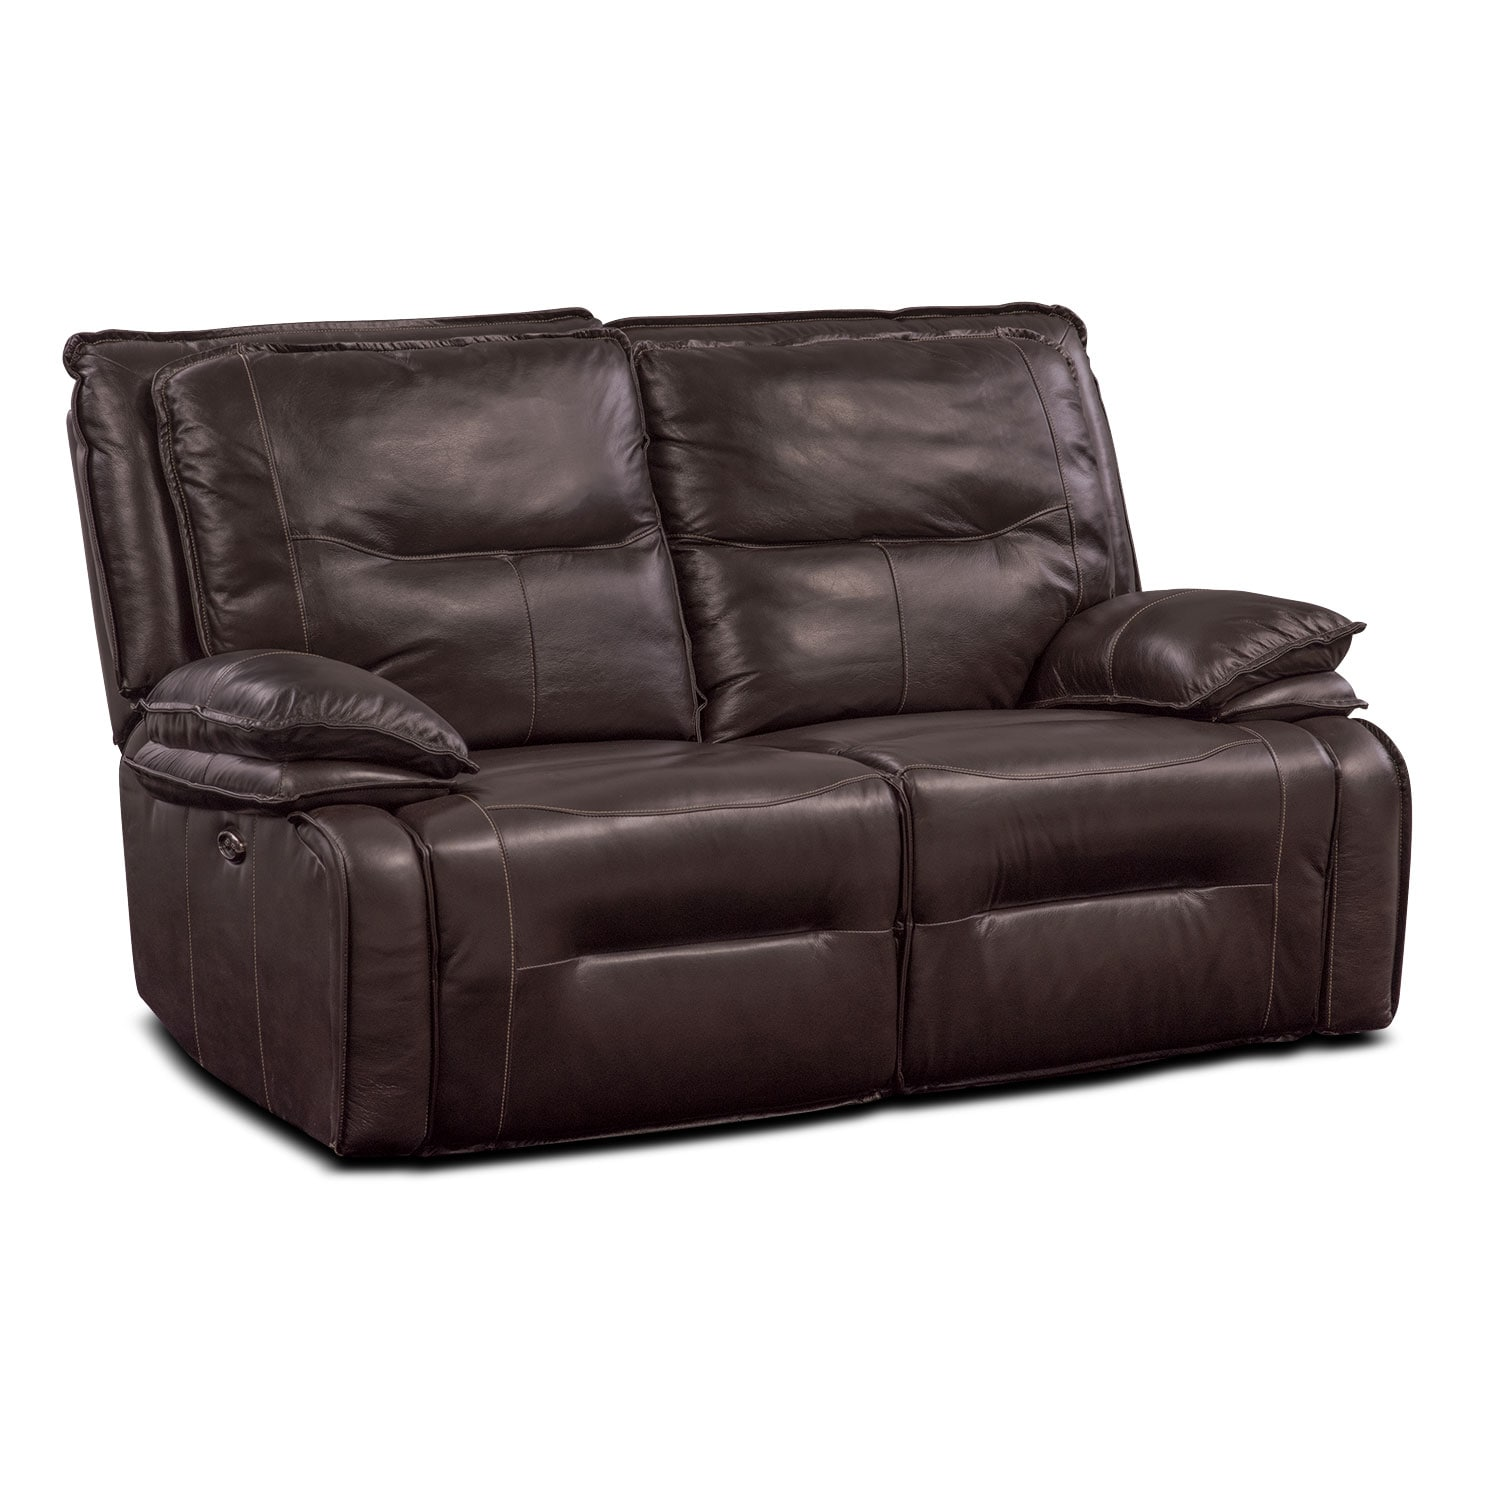 Living Room Furniture - Nikki 2-Piece Power Reclining Sectional - Brown